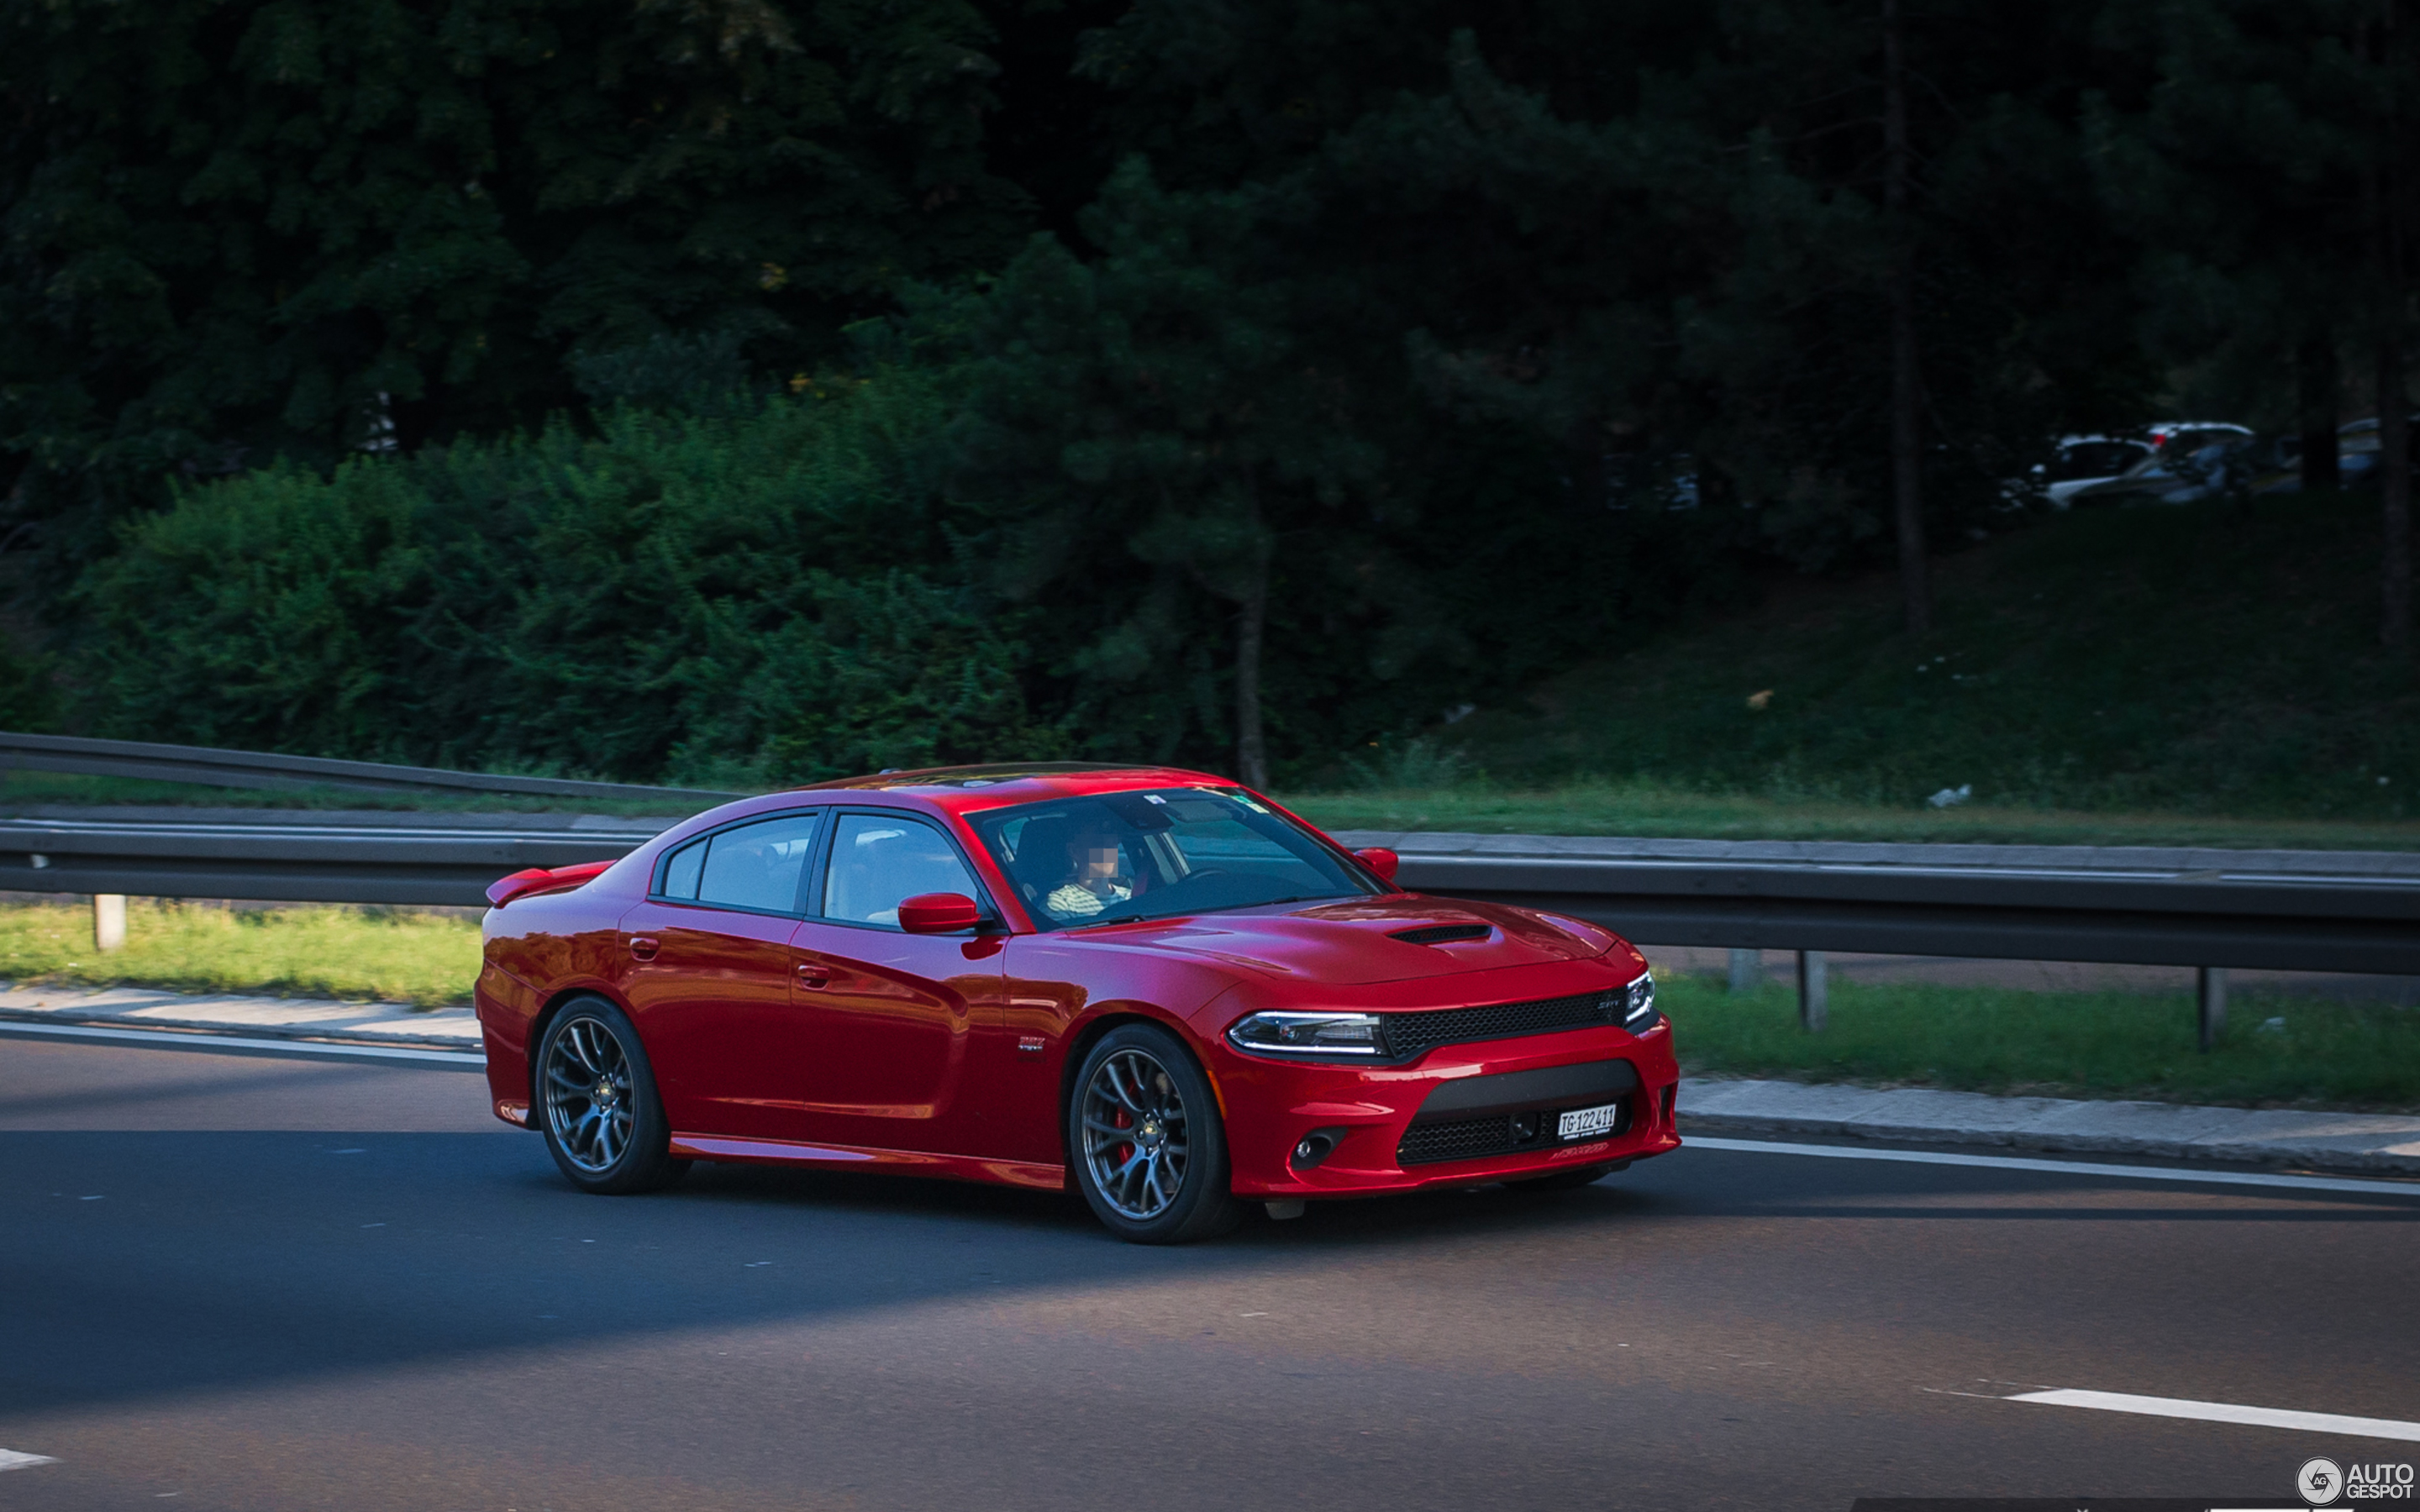 graphs crittenden dodge at mopars the fresh luxury dodgepics t r of charger park automotive